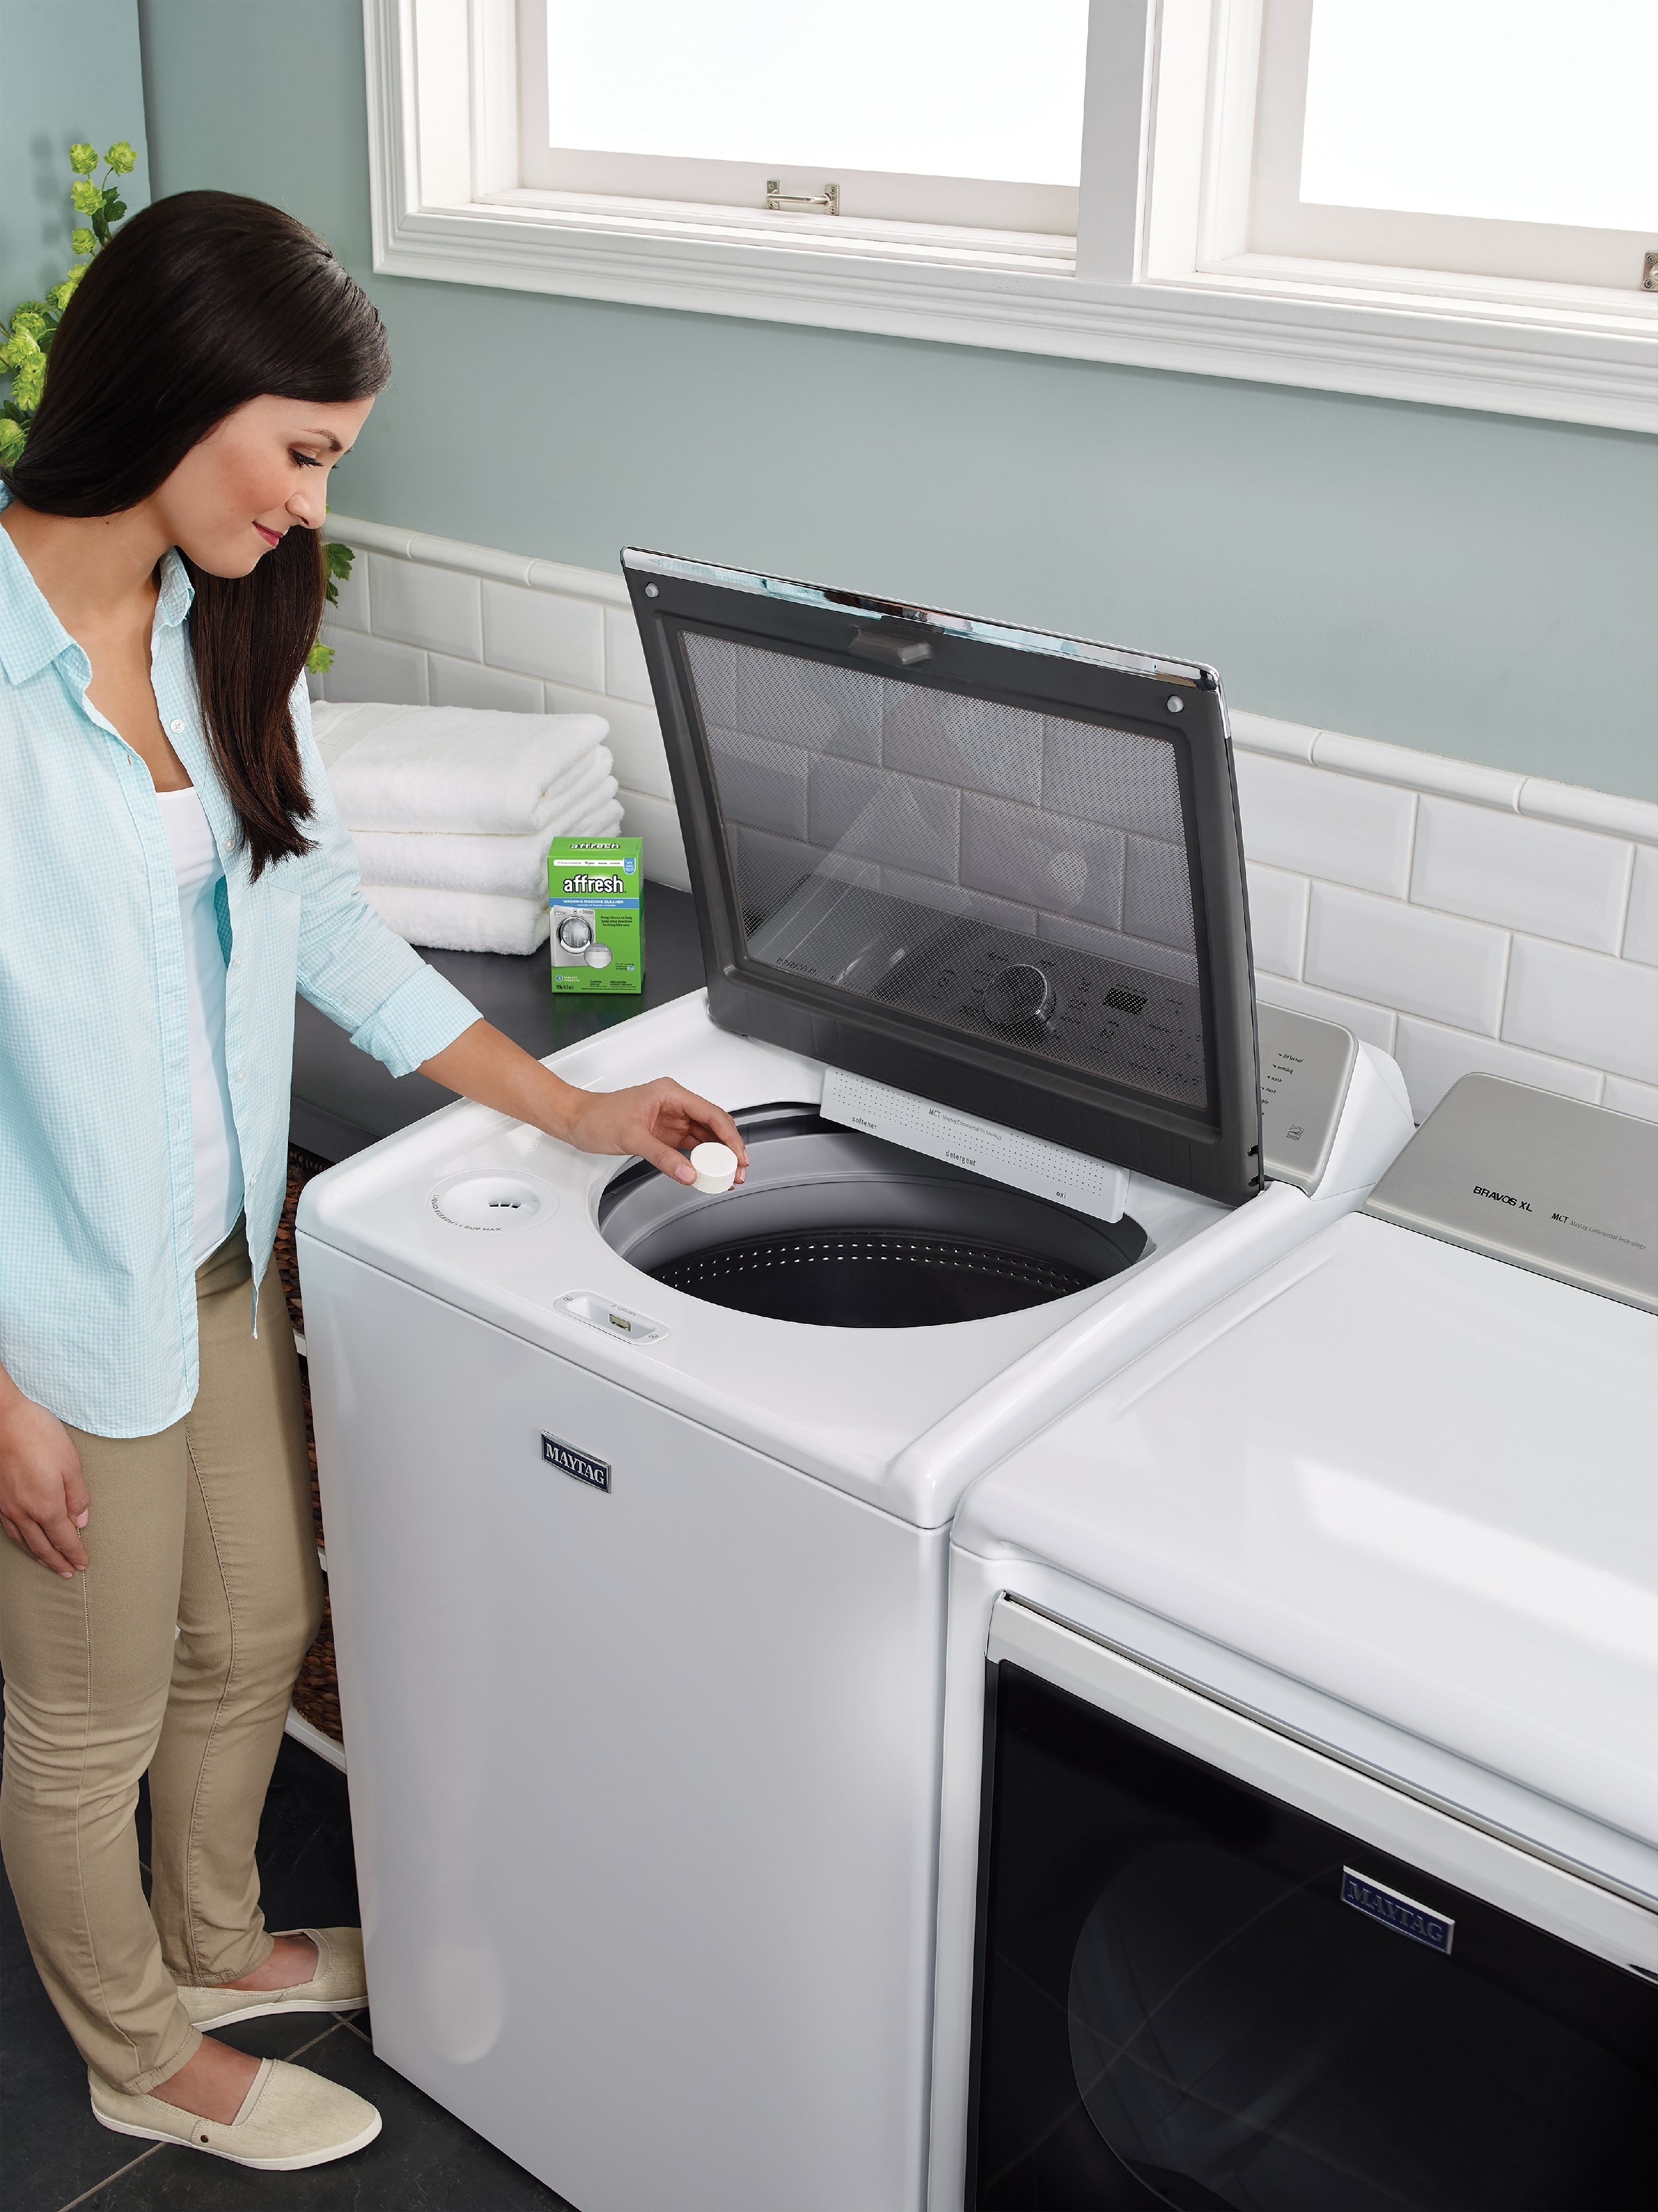 The washing machine tablets in use